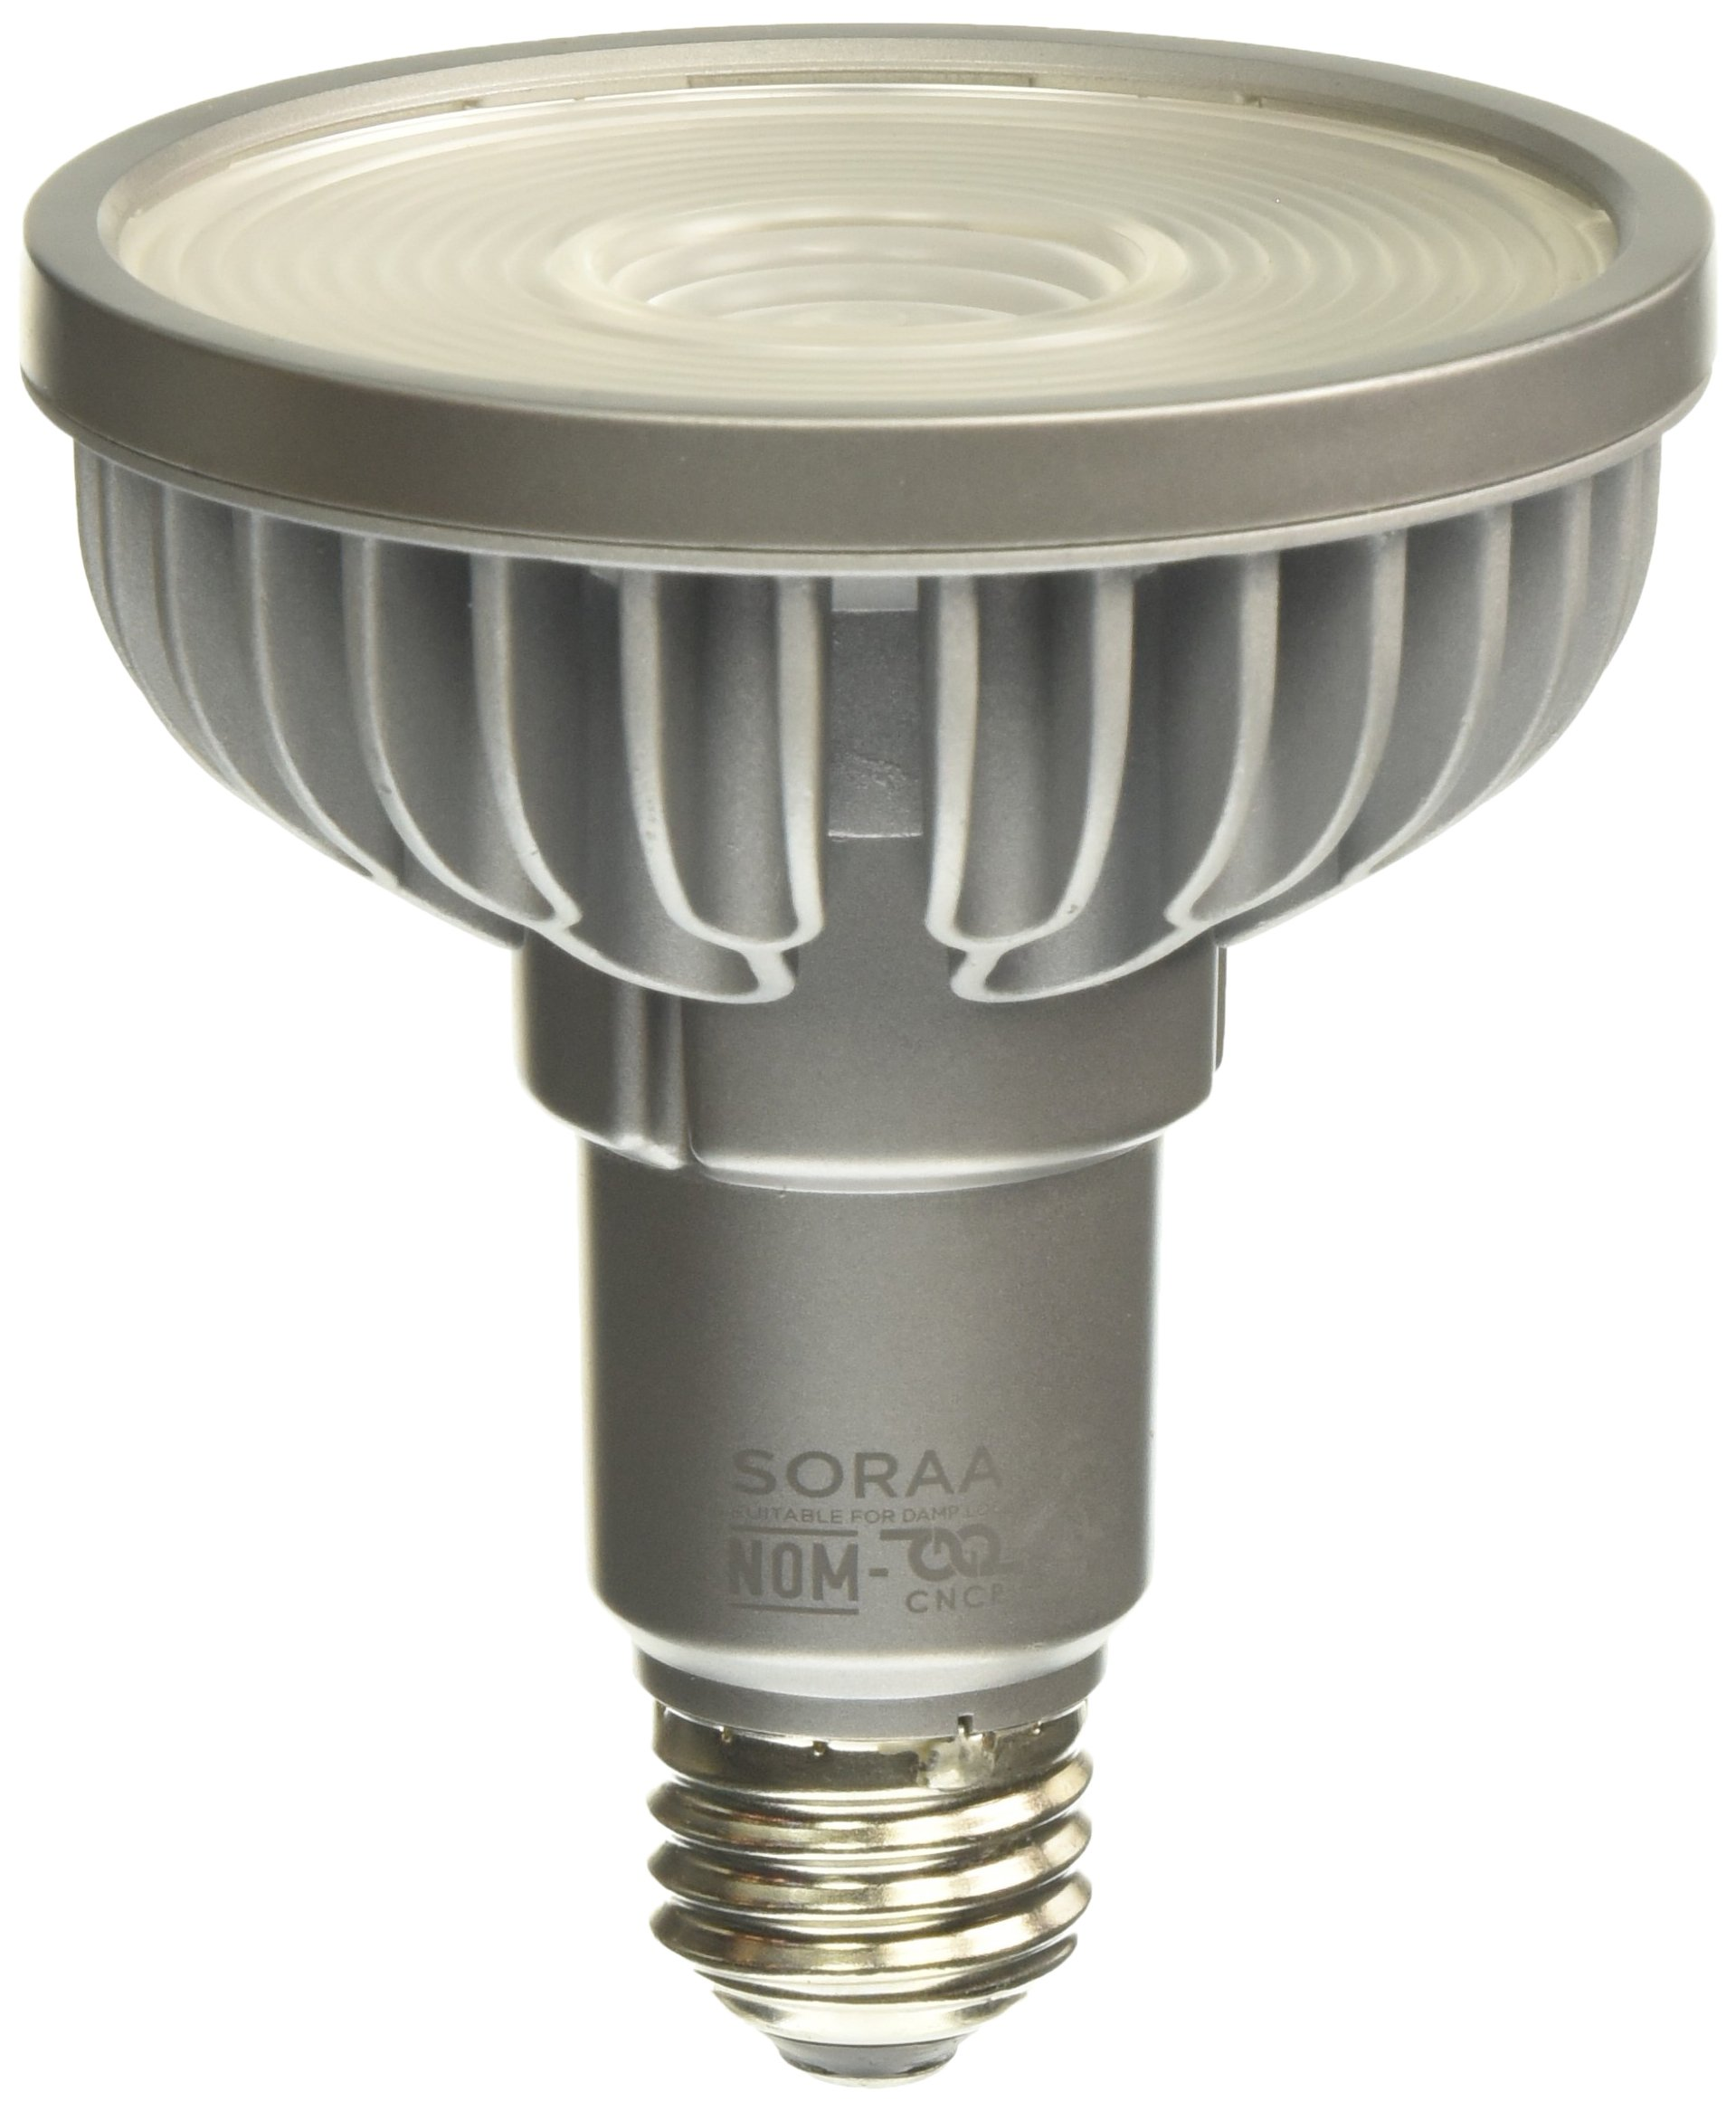 Bulbrite SP30L-18-60D-830-03 SORAA 18.5W LED PAR30L 3000K PREM. 60° Dimmable Light Bulb, Silver